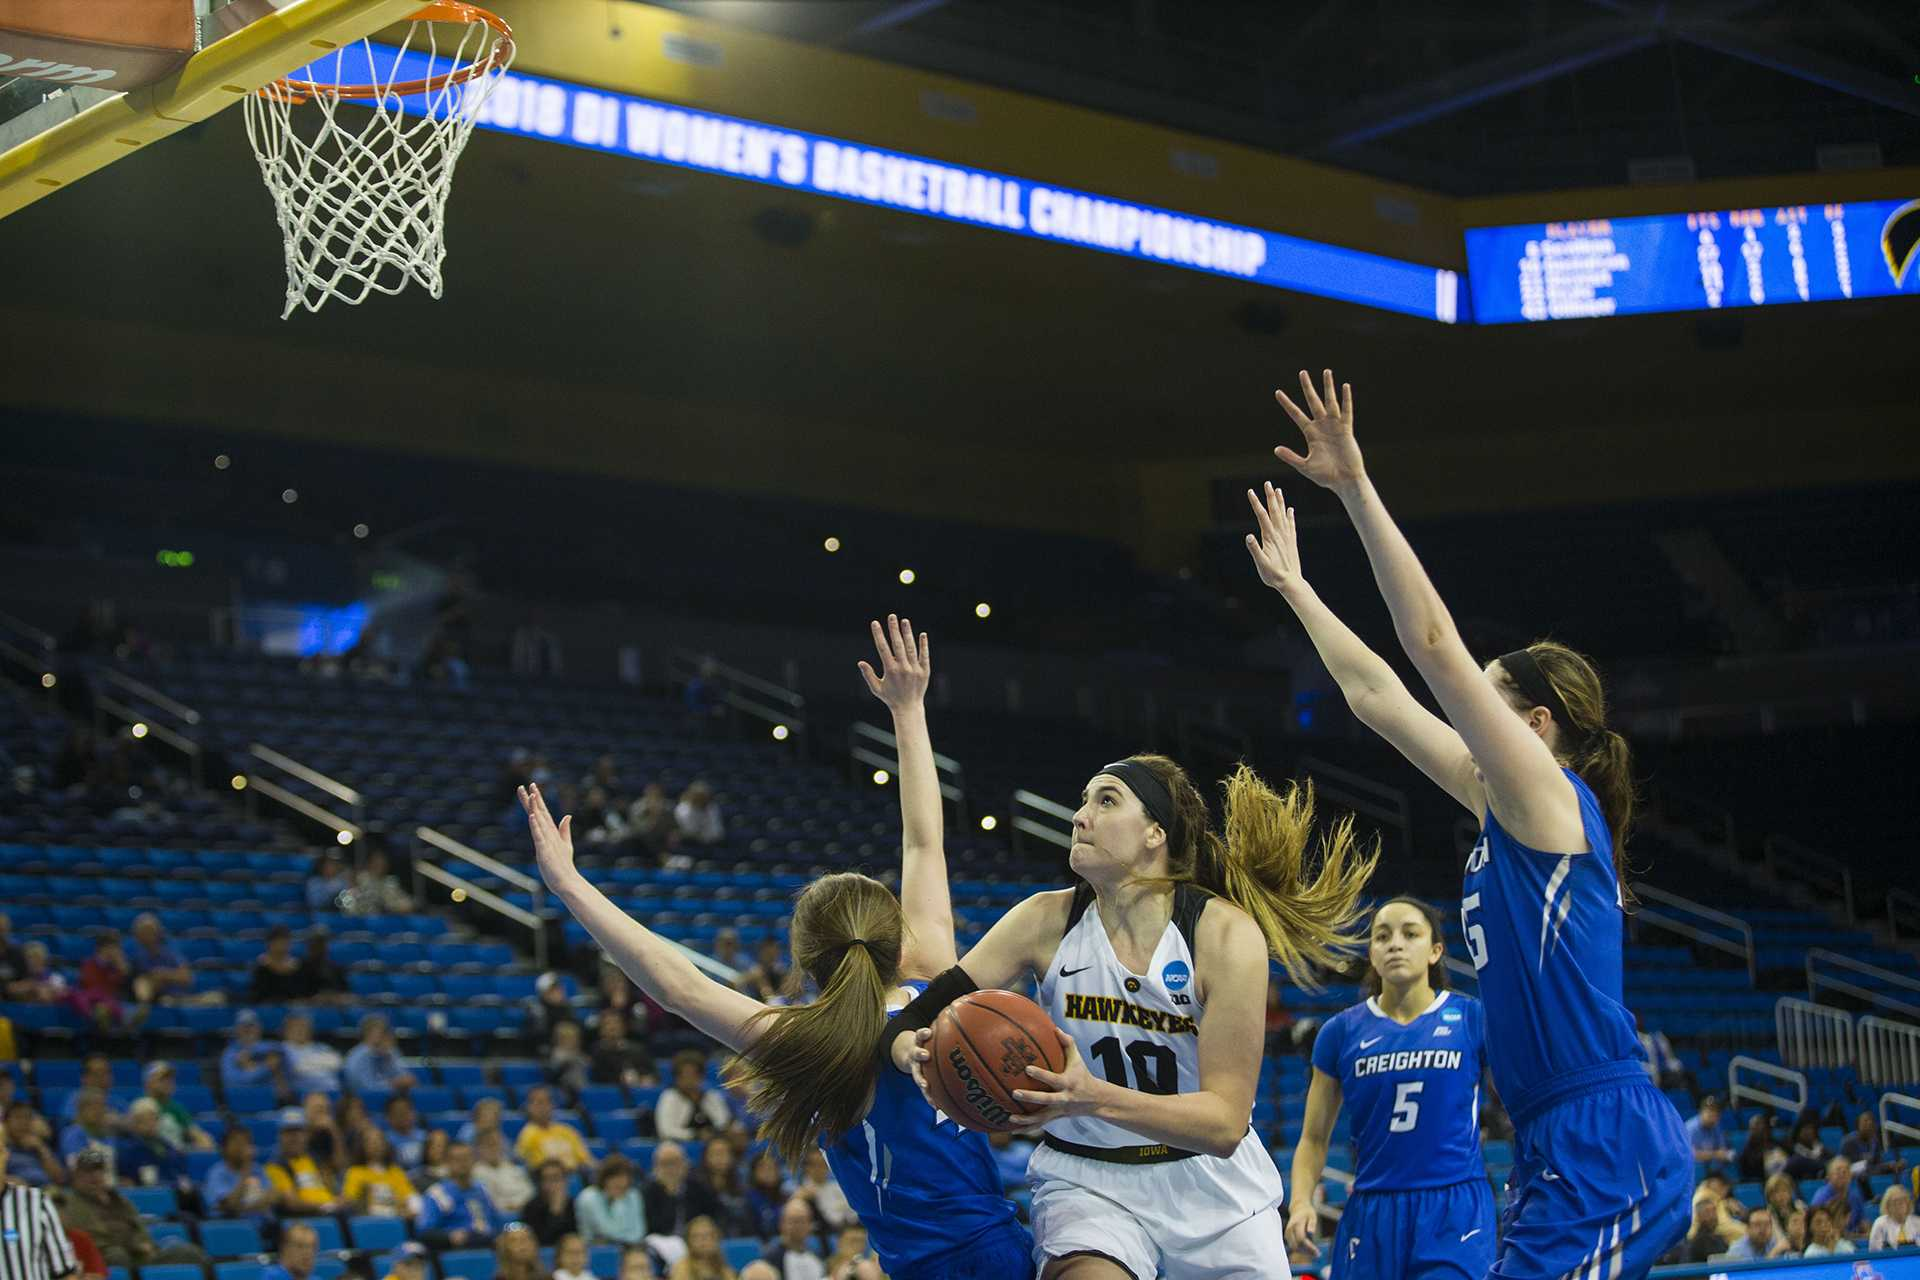 Photos: NCAA tournament women's basketball vs. Creighton